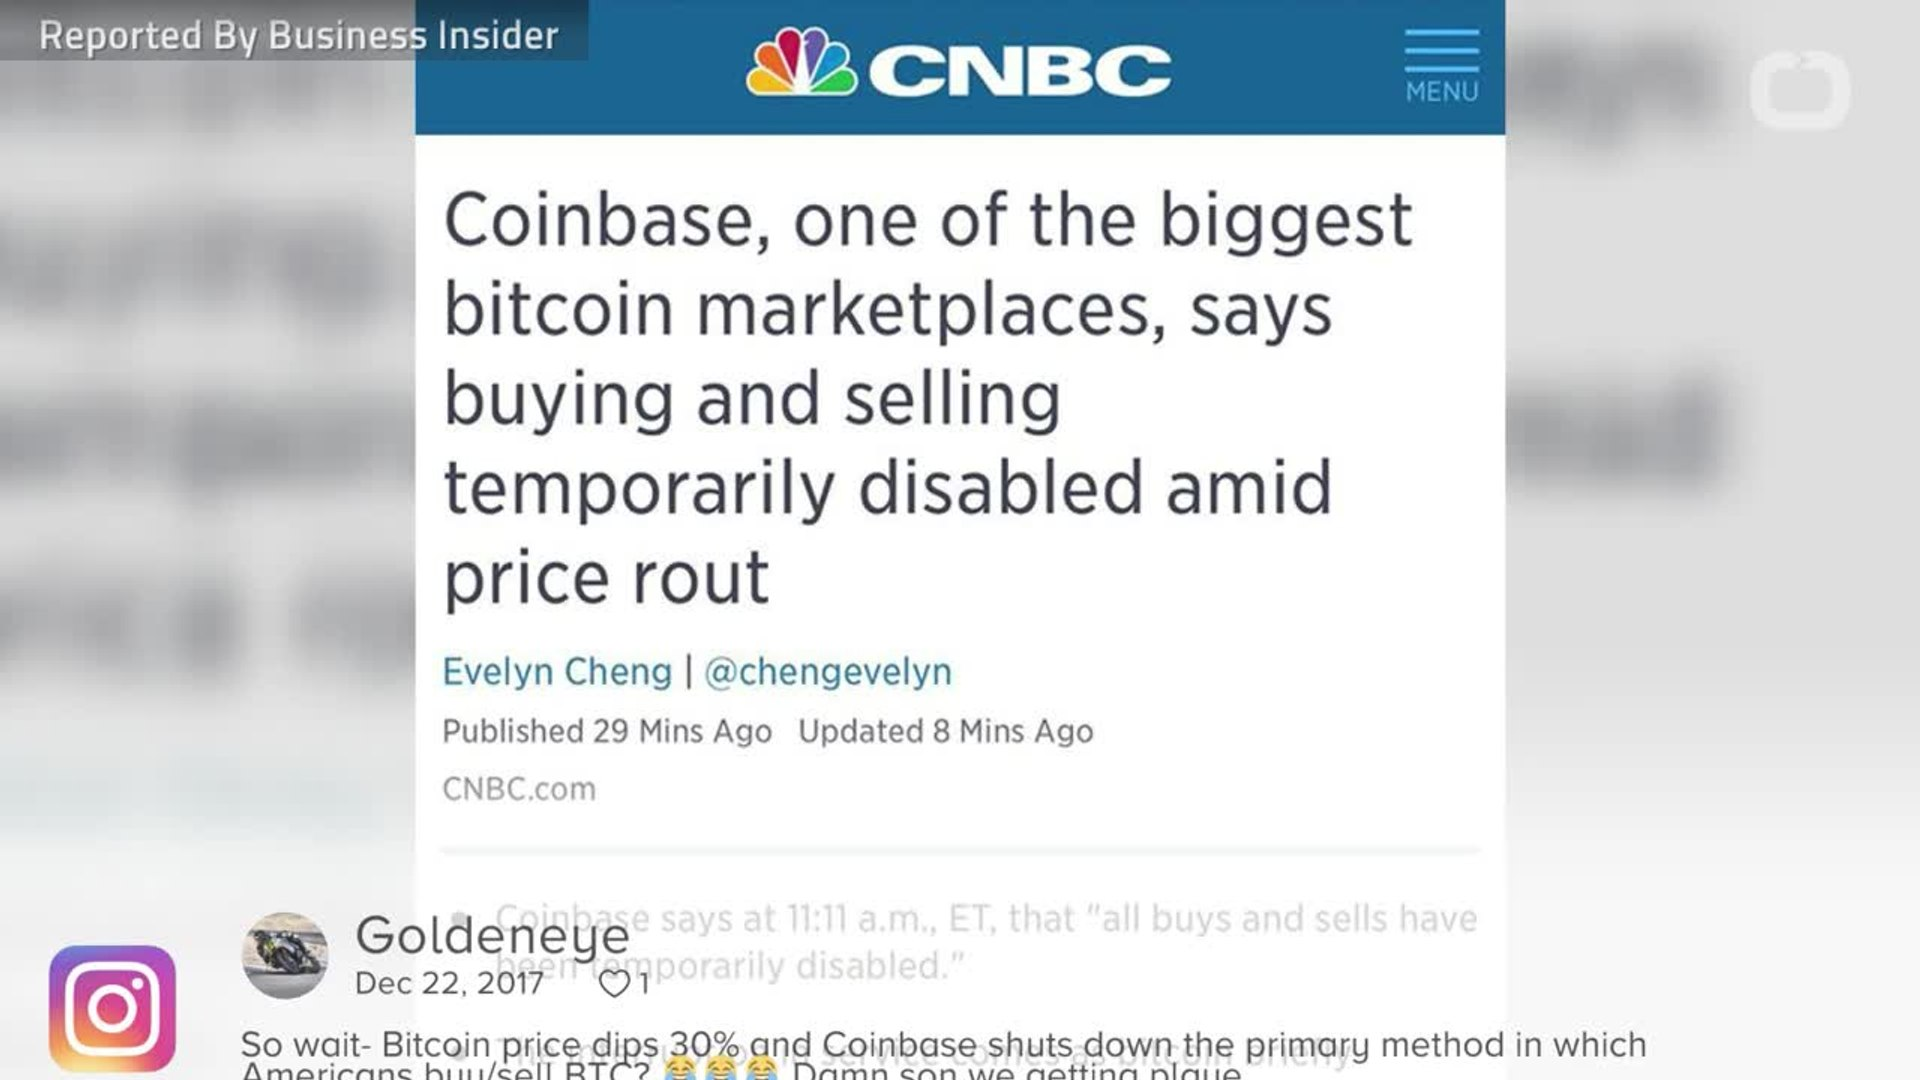 Coinbase halts buying and selling as crypto market plunges